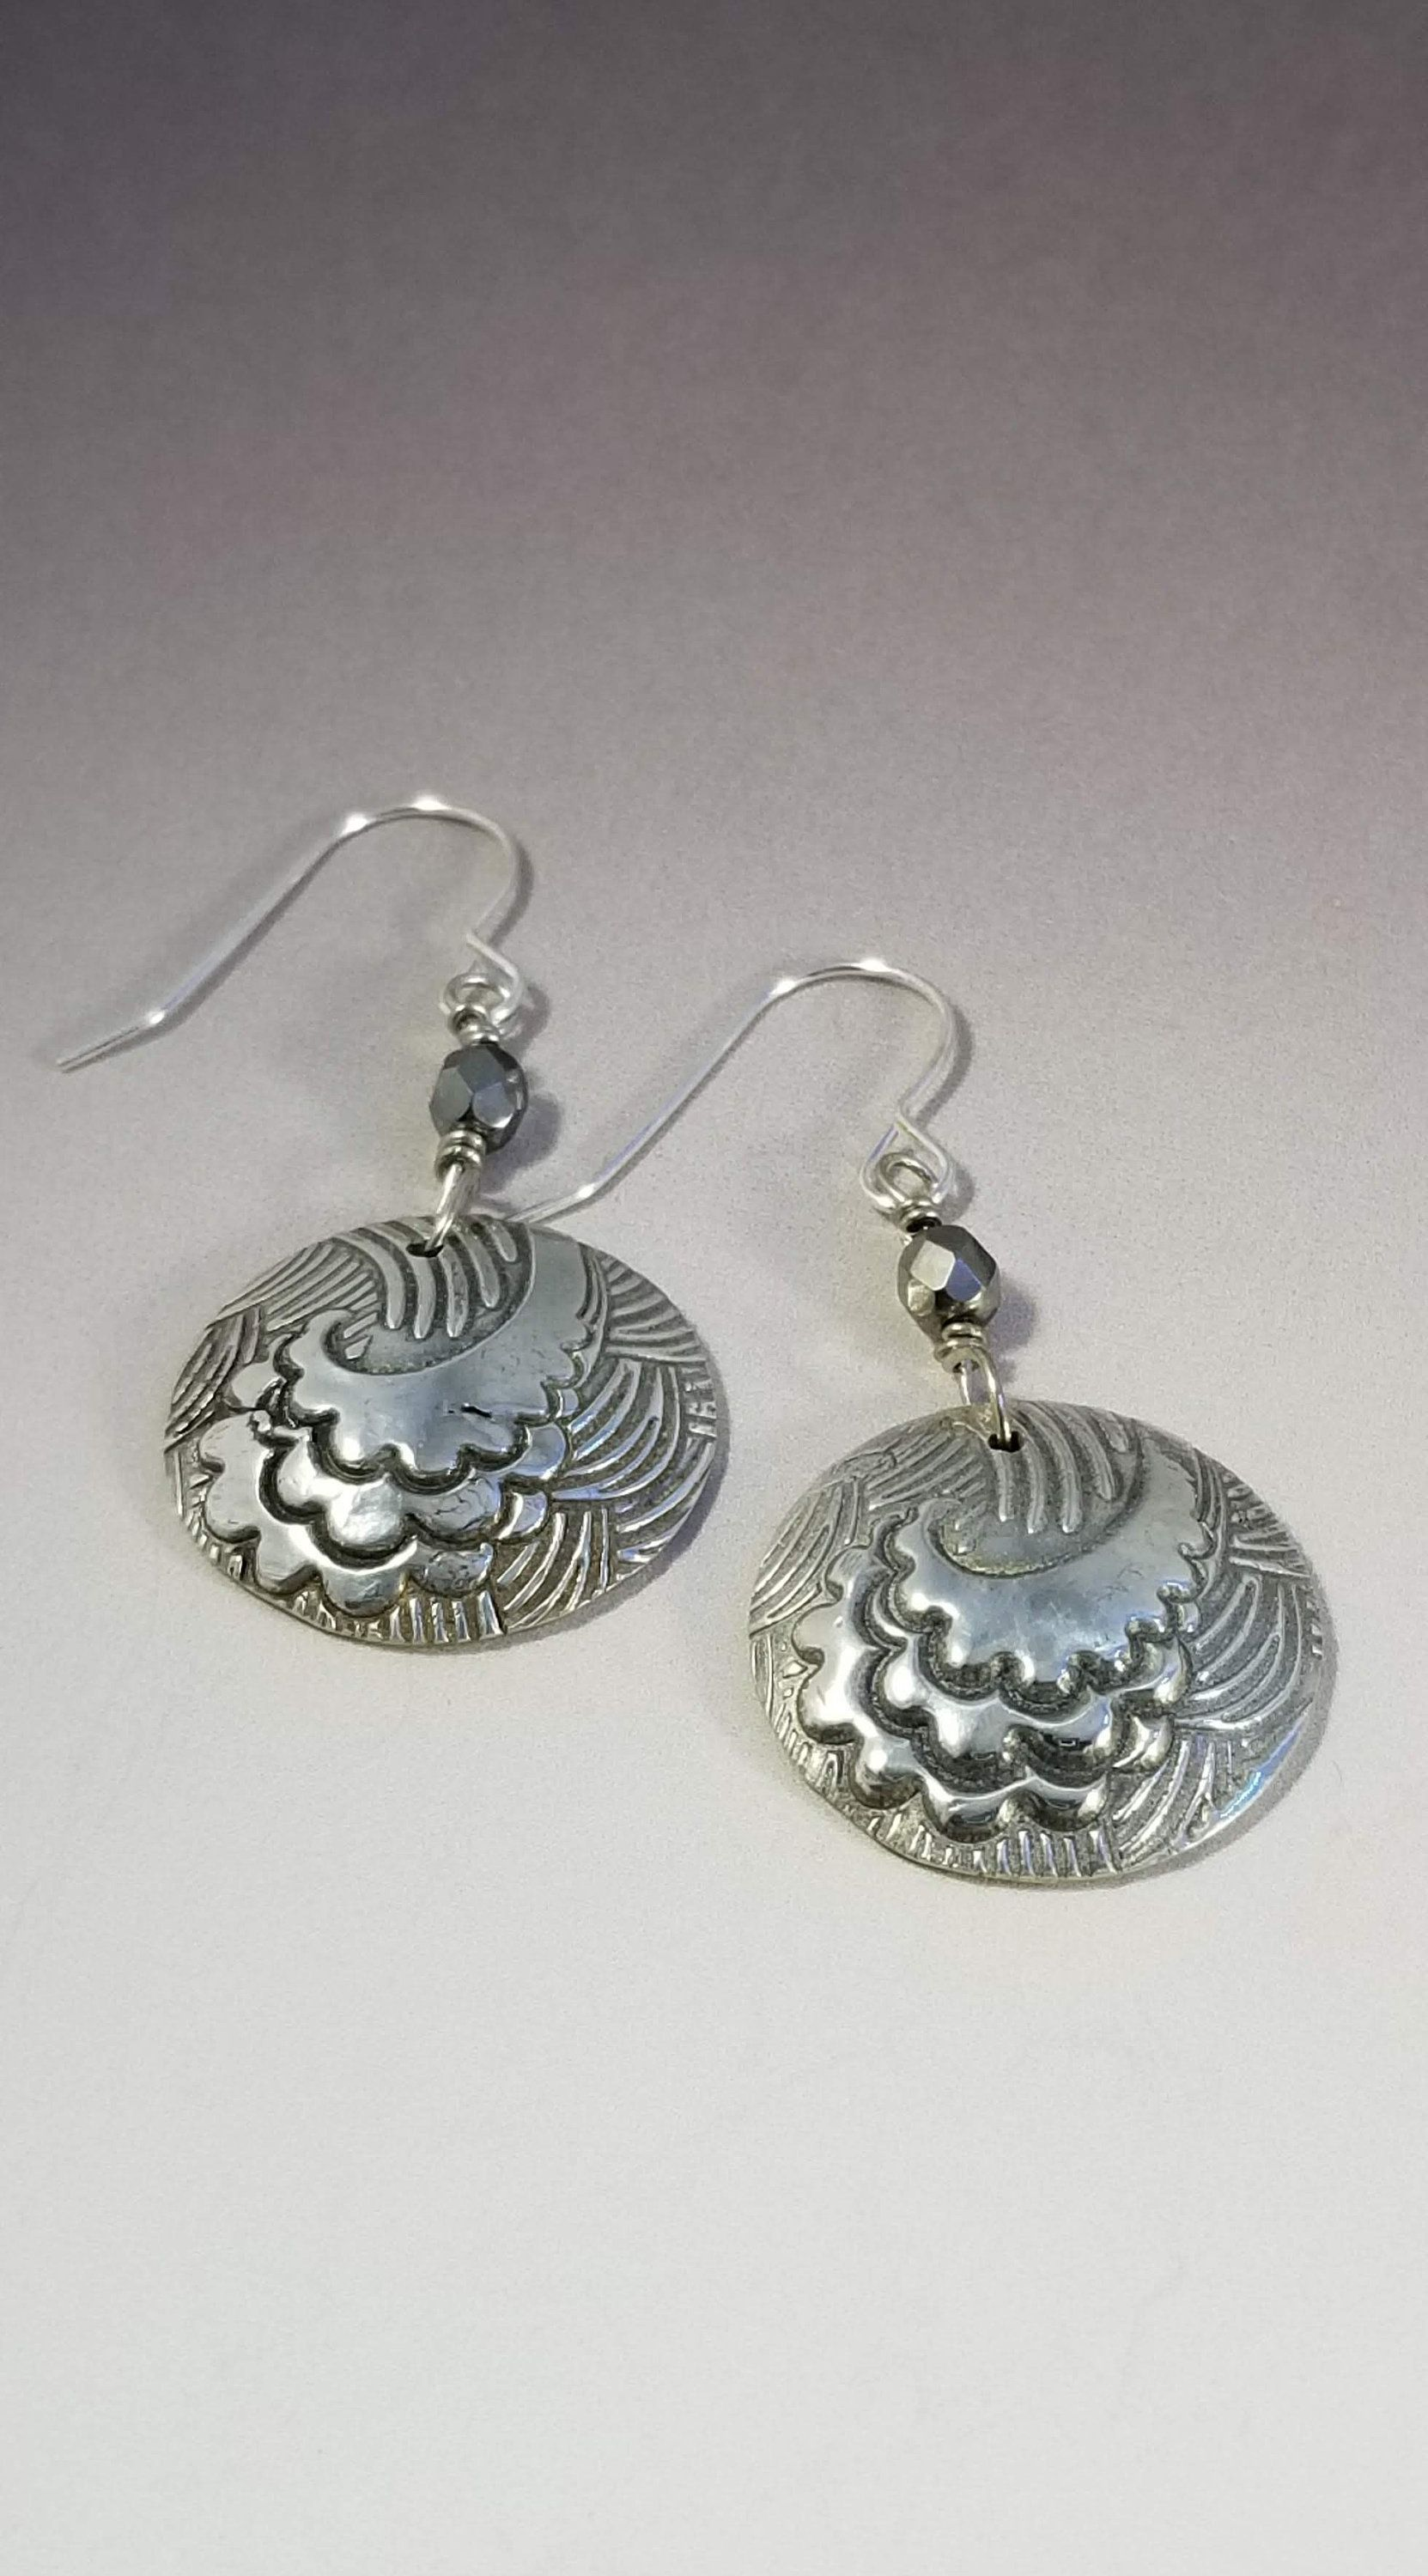 Silver ocean wave earrings-Water is life-Catch a wave-The shape of water-beach earrings-beachcomber-scuba gift-surfs up-waves-sand-beach-sun